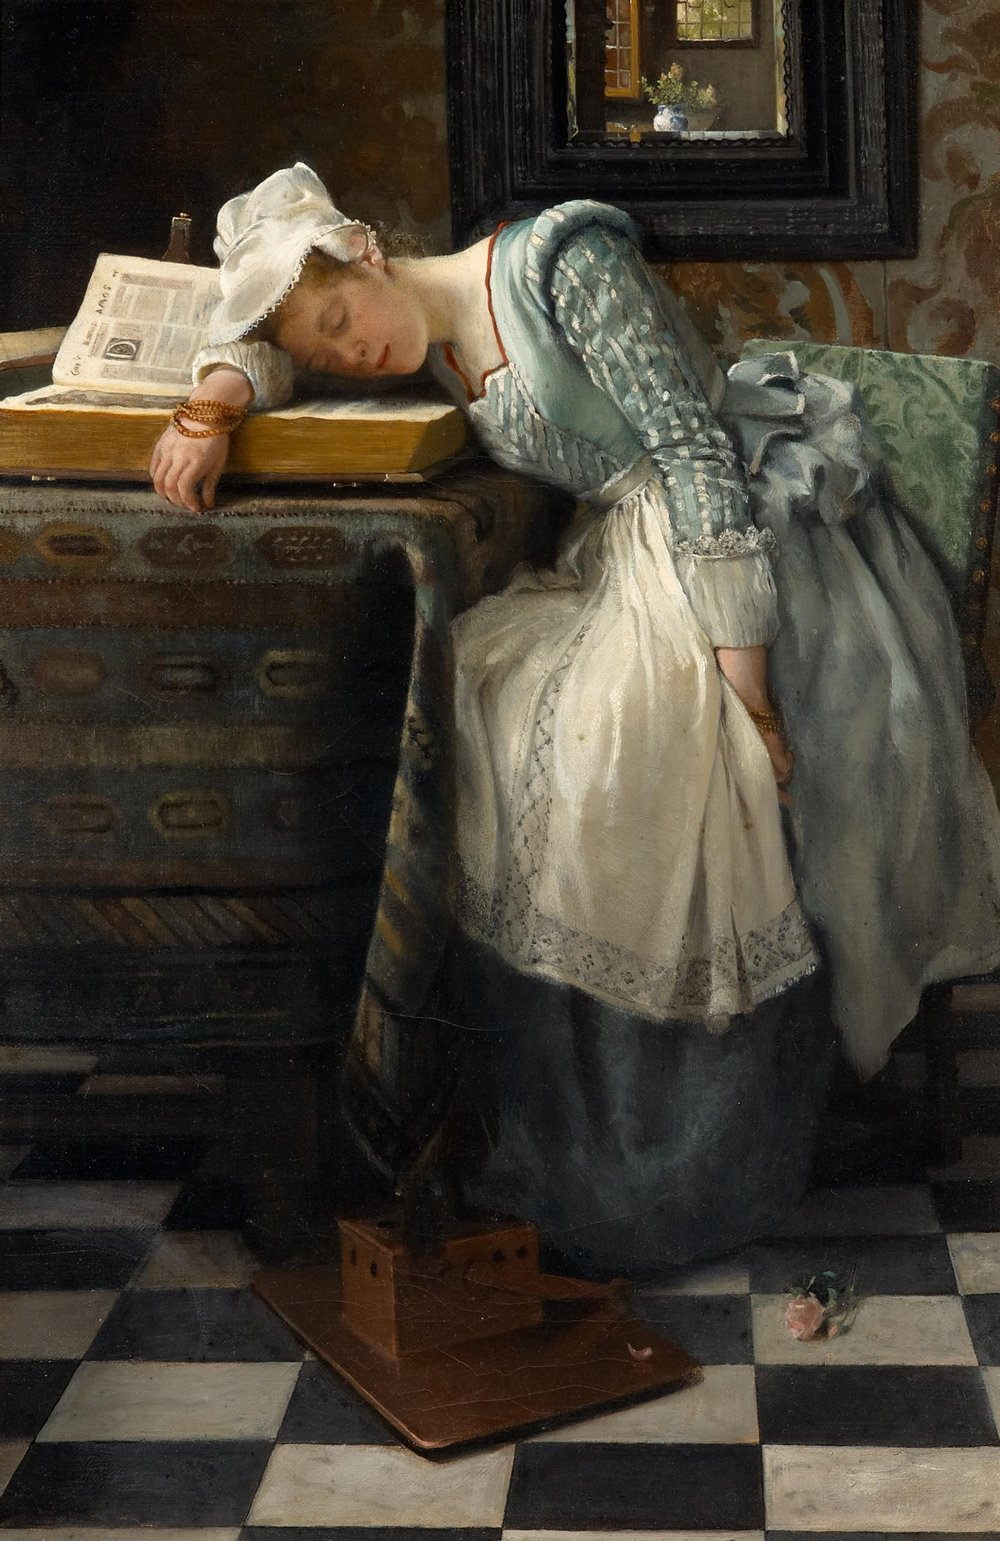 World of Dreams (1876) by Laura Theresa Alma-Tadema (1852-1909); [Public domain], via Wikimedia Commons